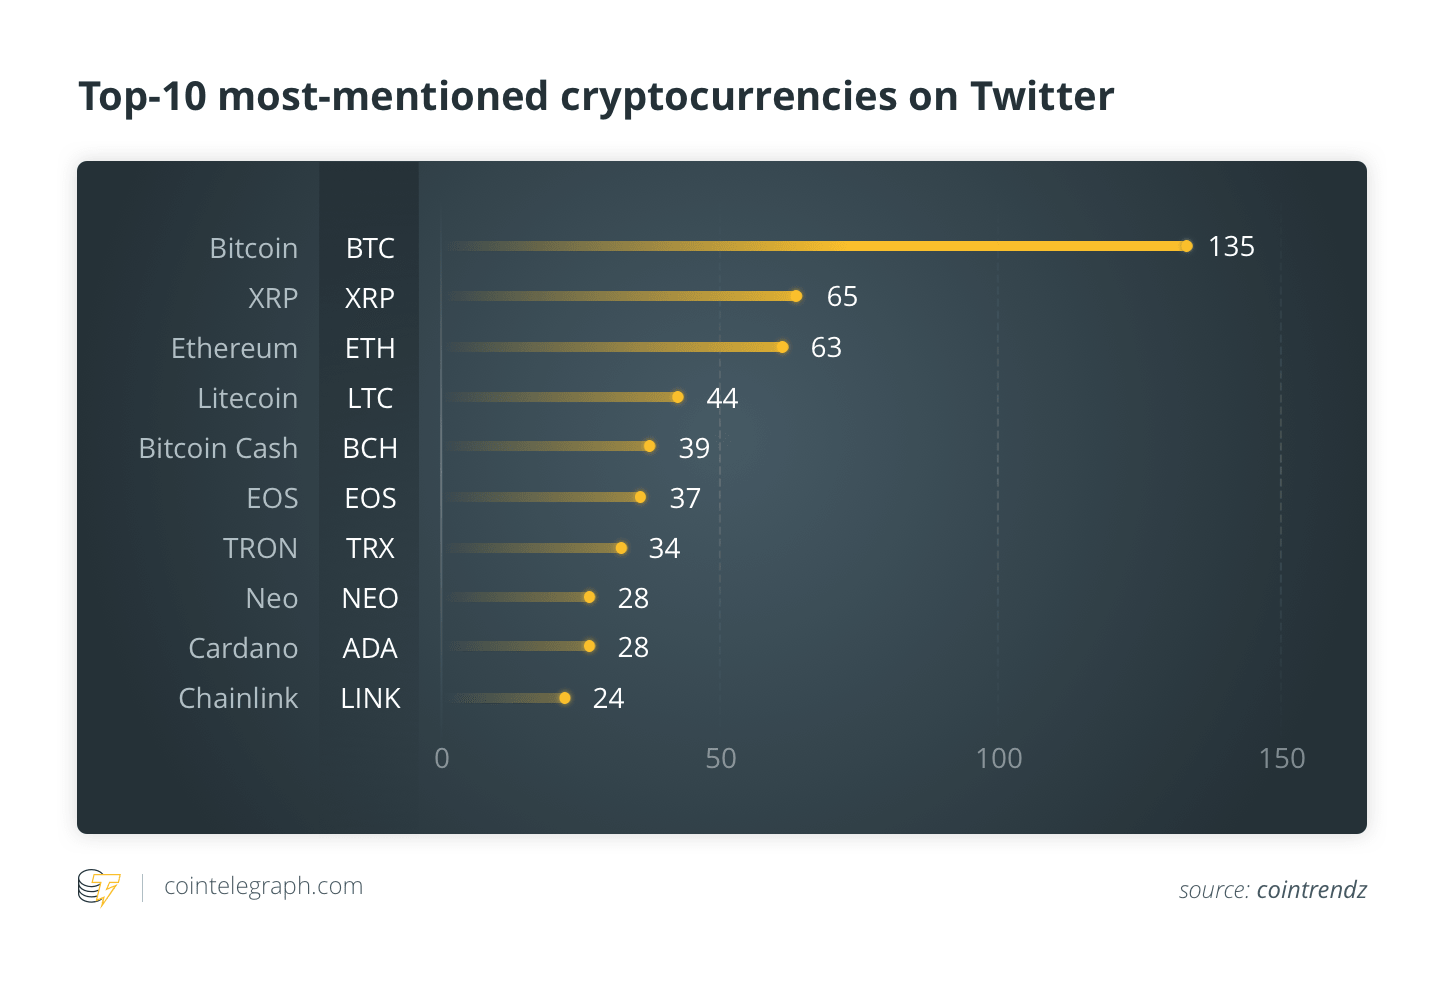 Top-10 most mentioned cryptocurrencies on Twitter